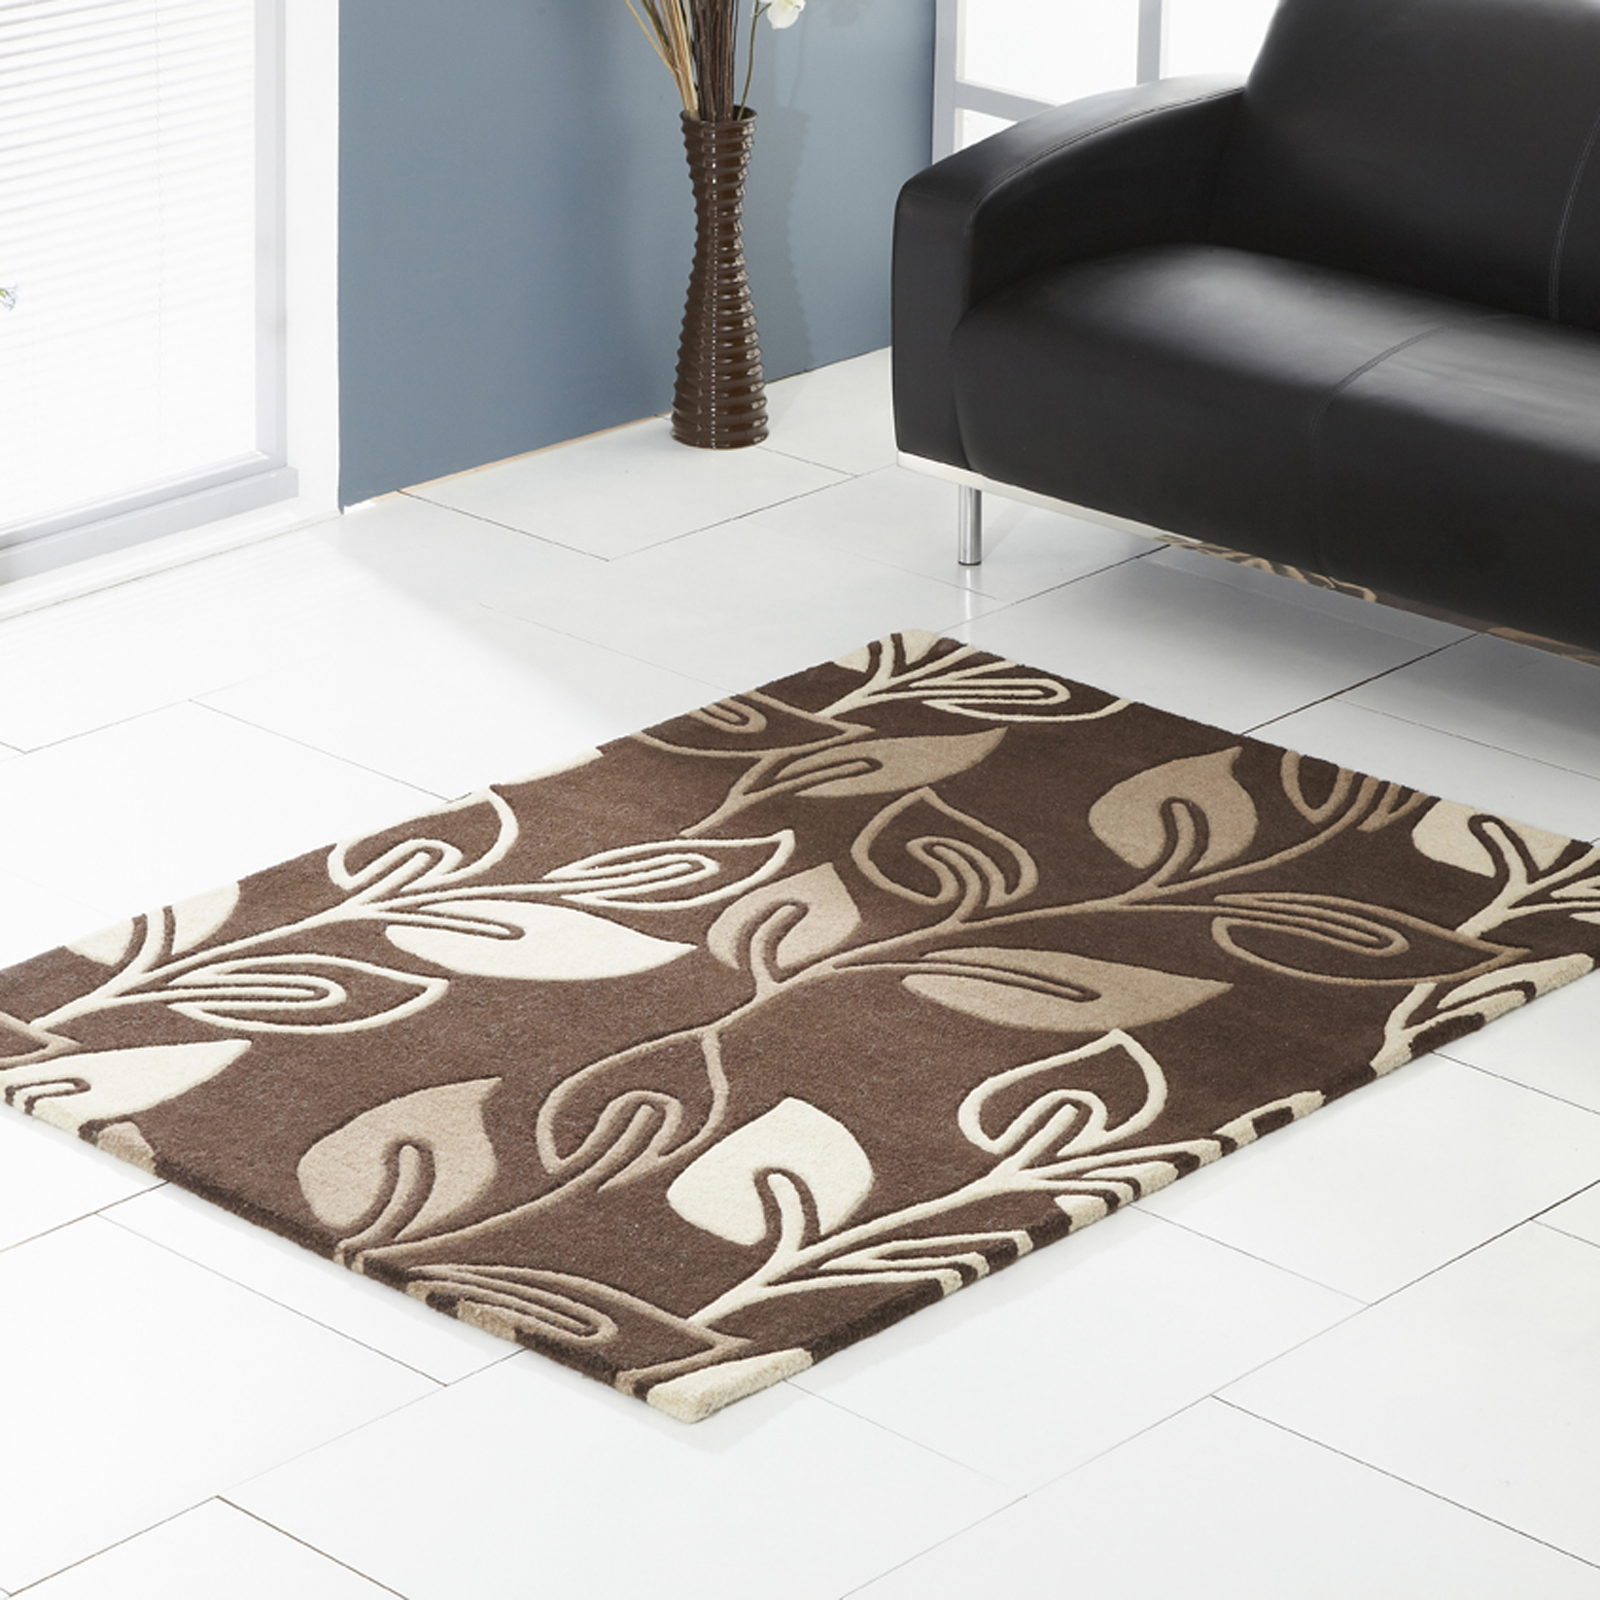 Retro Flower Rugs in Chocolate